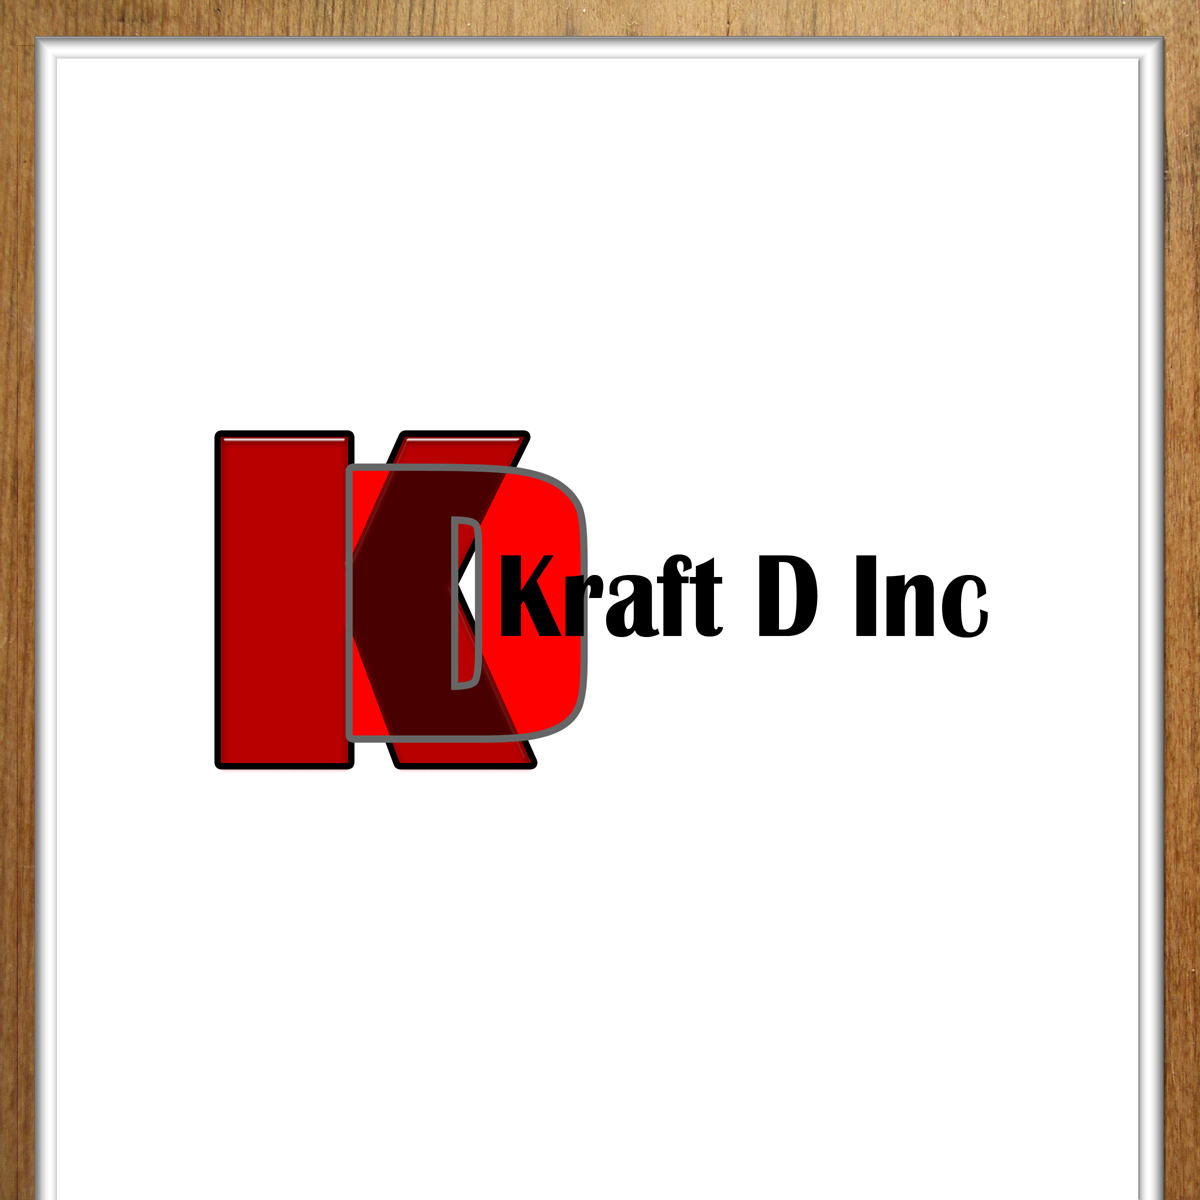 Logo Design by MITUCA ANDREI - Entry No. 310 in the Logo Design Contest Unique Logo Design Wanted for Kraft D Inc.